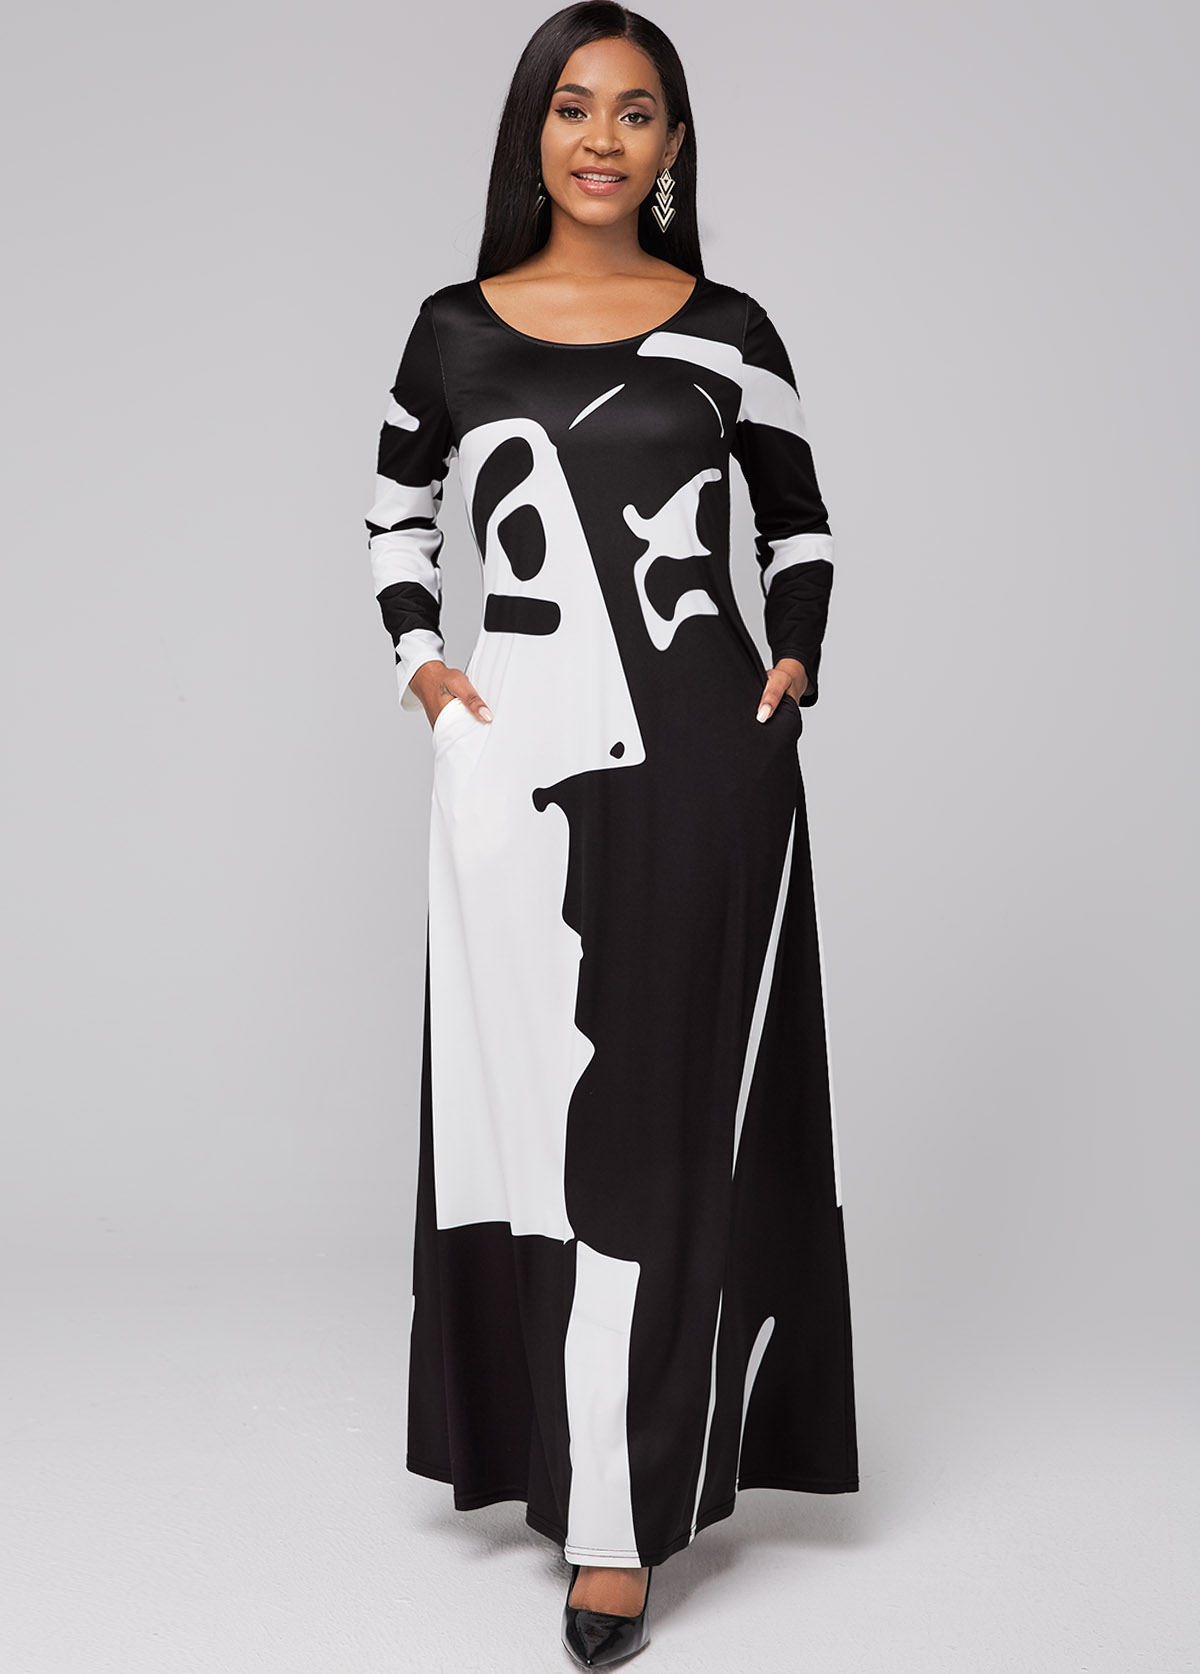 ROTITA Pocket Graffiti Print Round Neck Maxi Dress